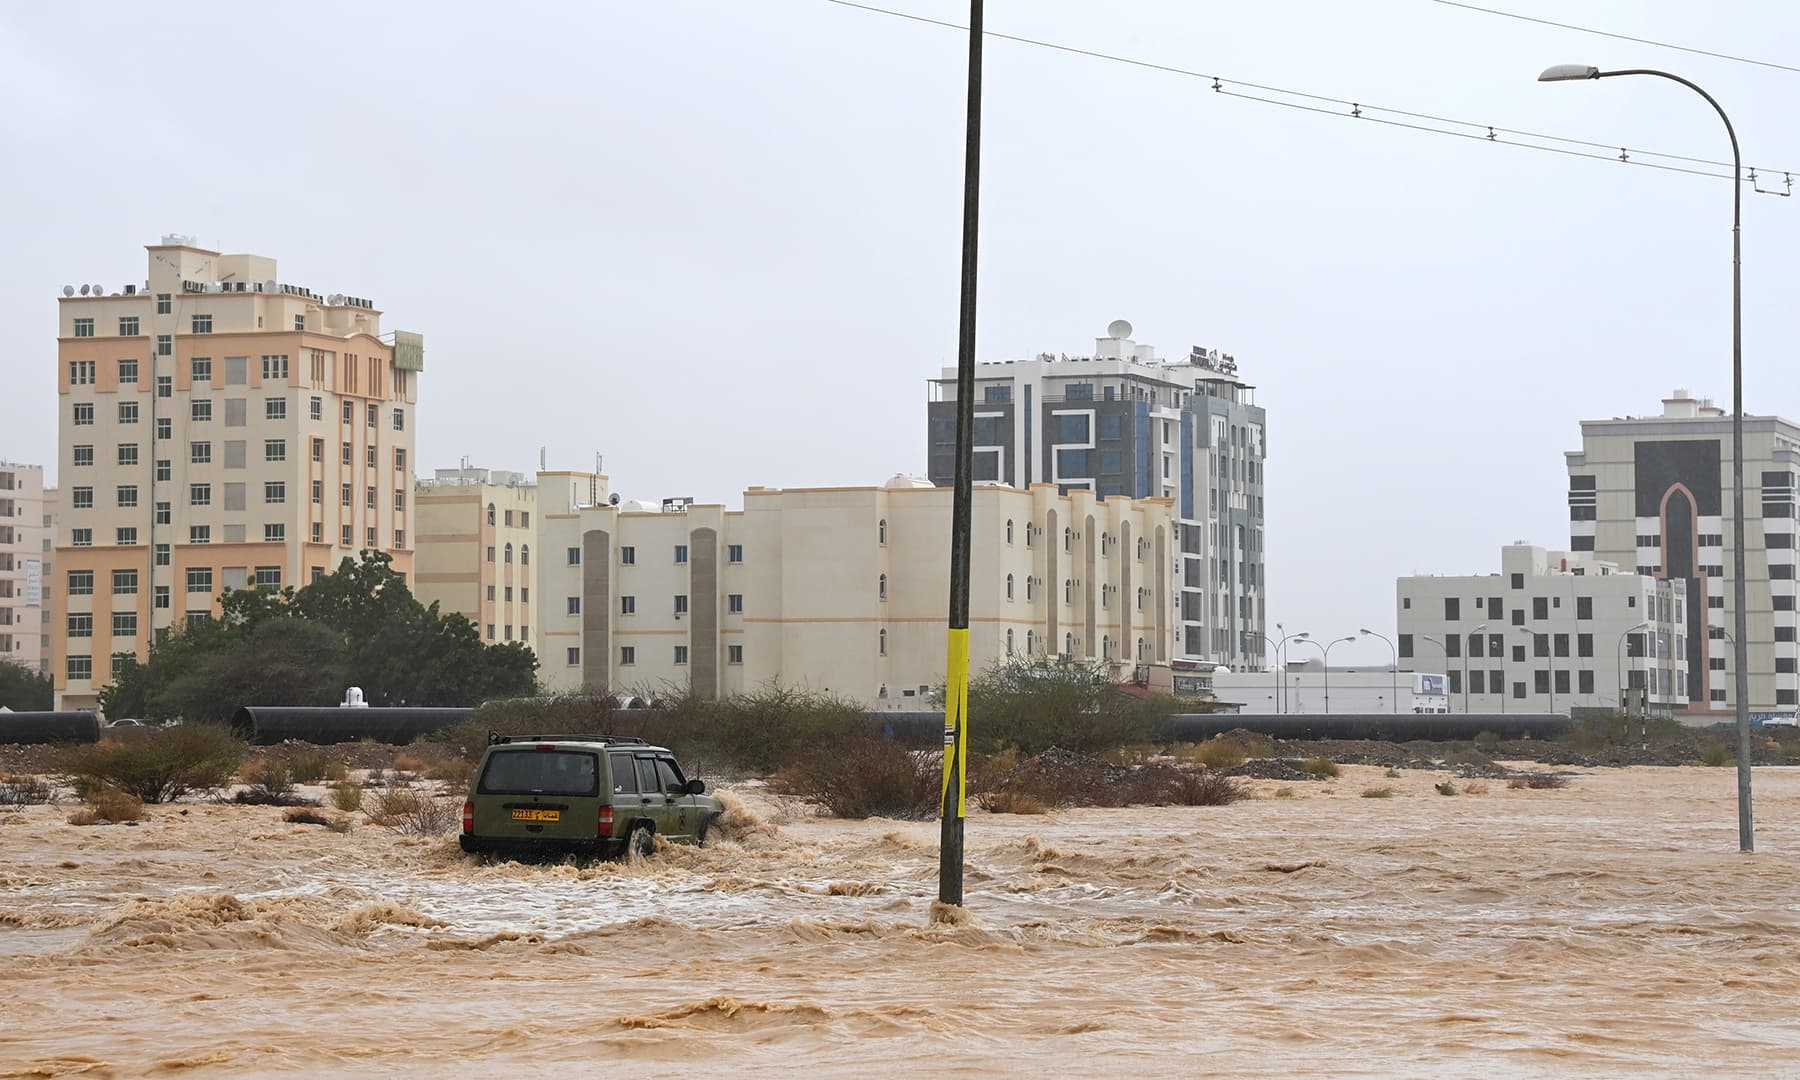 Flooded streets are seen as Cyclone Shaheen makes landfall in Muscat, Oman, October 3. — Reuters